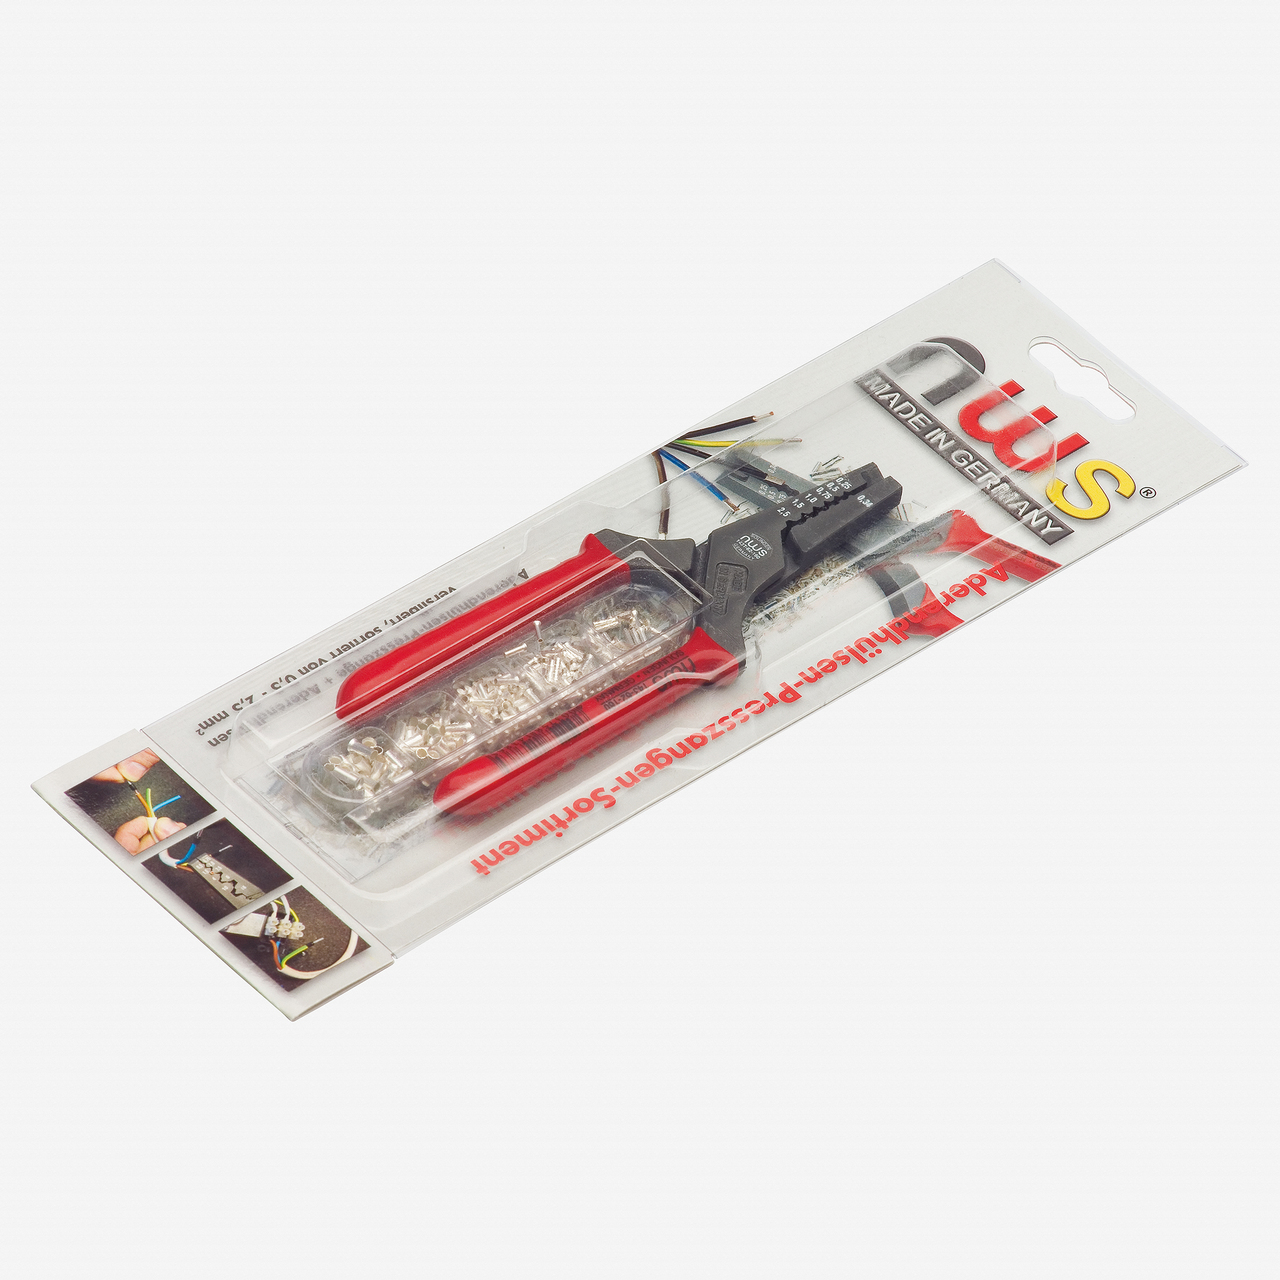 NWS 143-TS Pressing Pliers and End-Sleeves Assortment - KC Tool